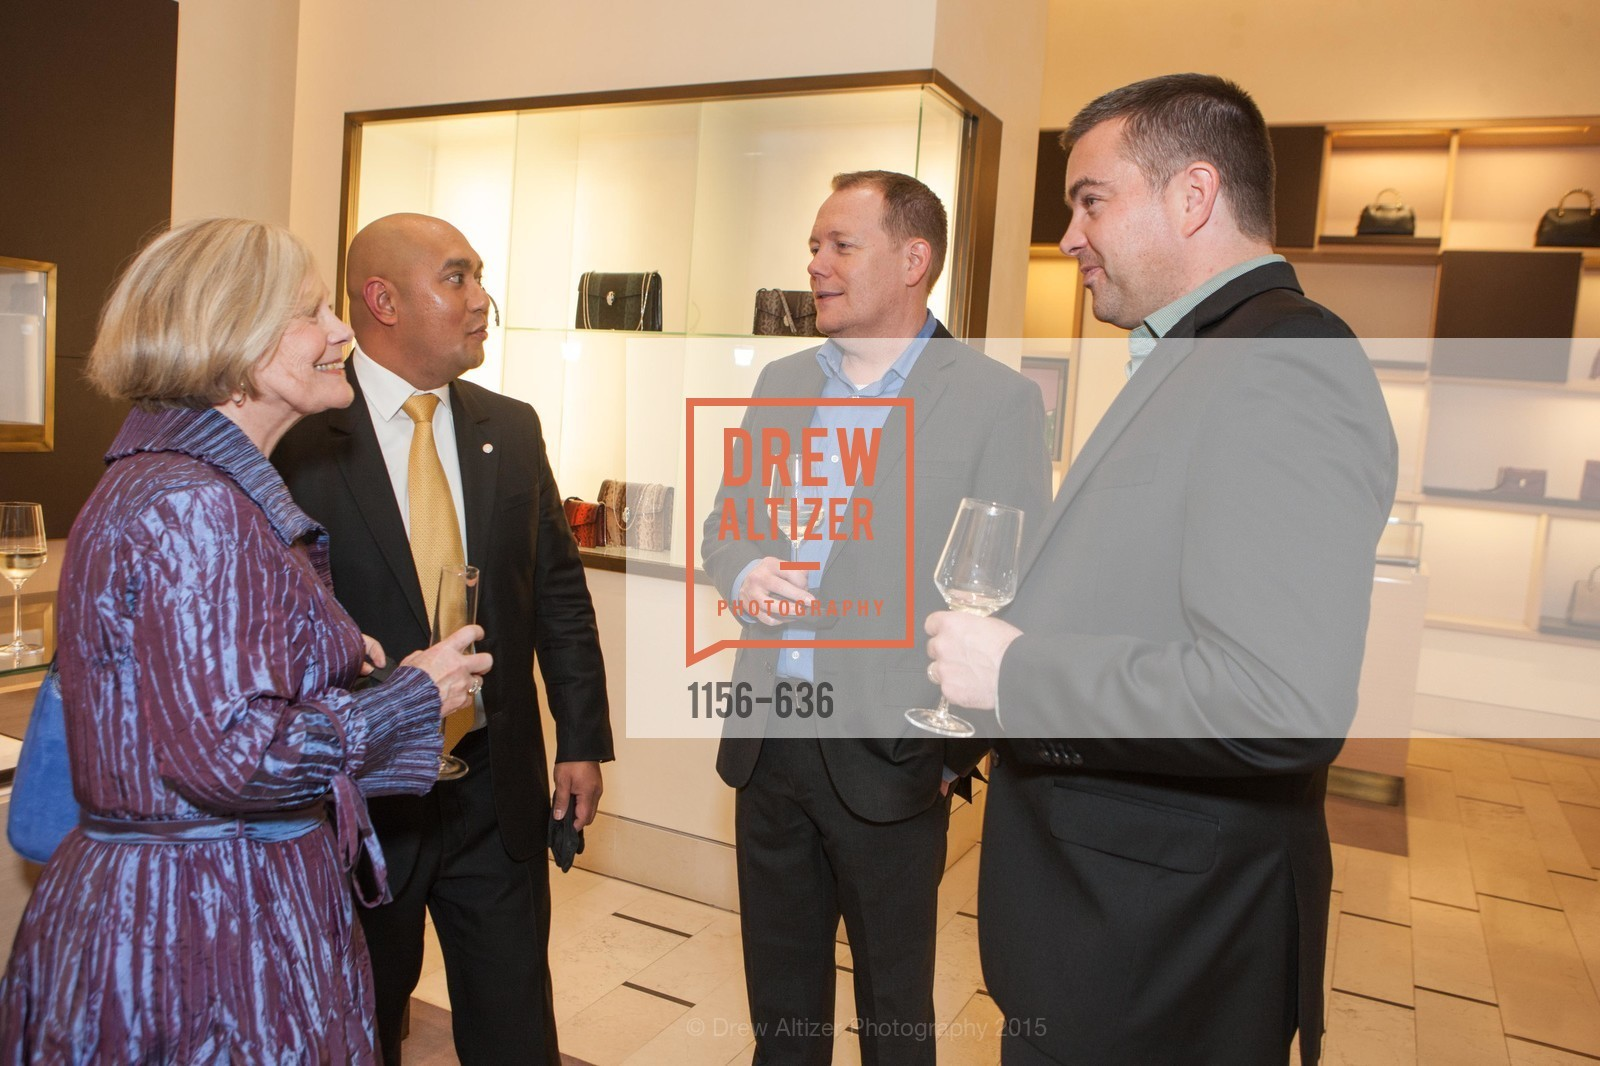 Lenny Hanson, Eric Padua, Don Parker, Todd Creel, Bulgari San Francisco Presents WINE, WHISKEY & WATCHES, Bulgari San Francisco. 200 Stockton Street, December 8th, 2015,Drew Altizer, Drew Altizer Photography, full-service agency, private events, San Francisco photographer, photographer california